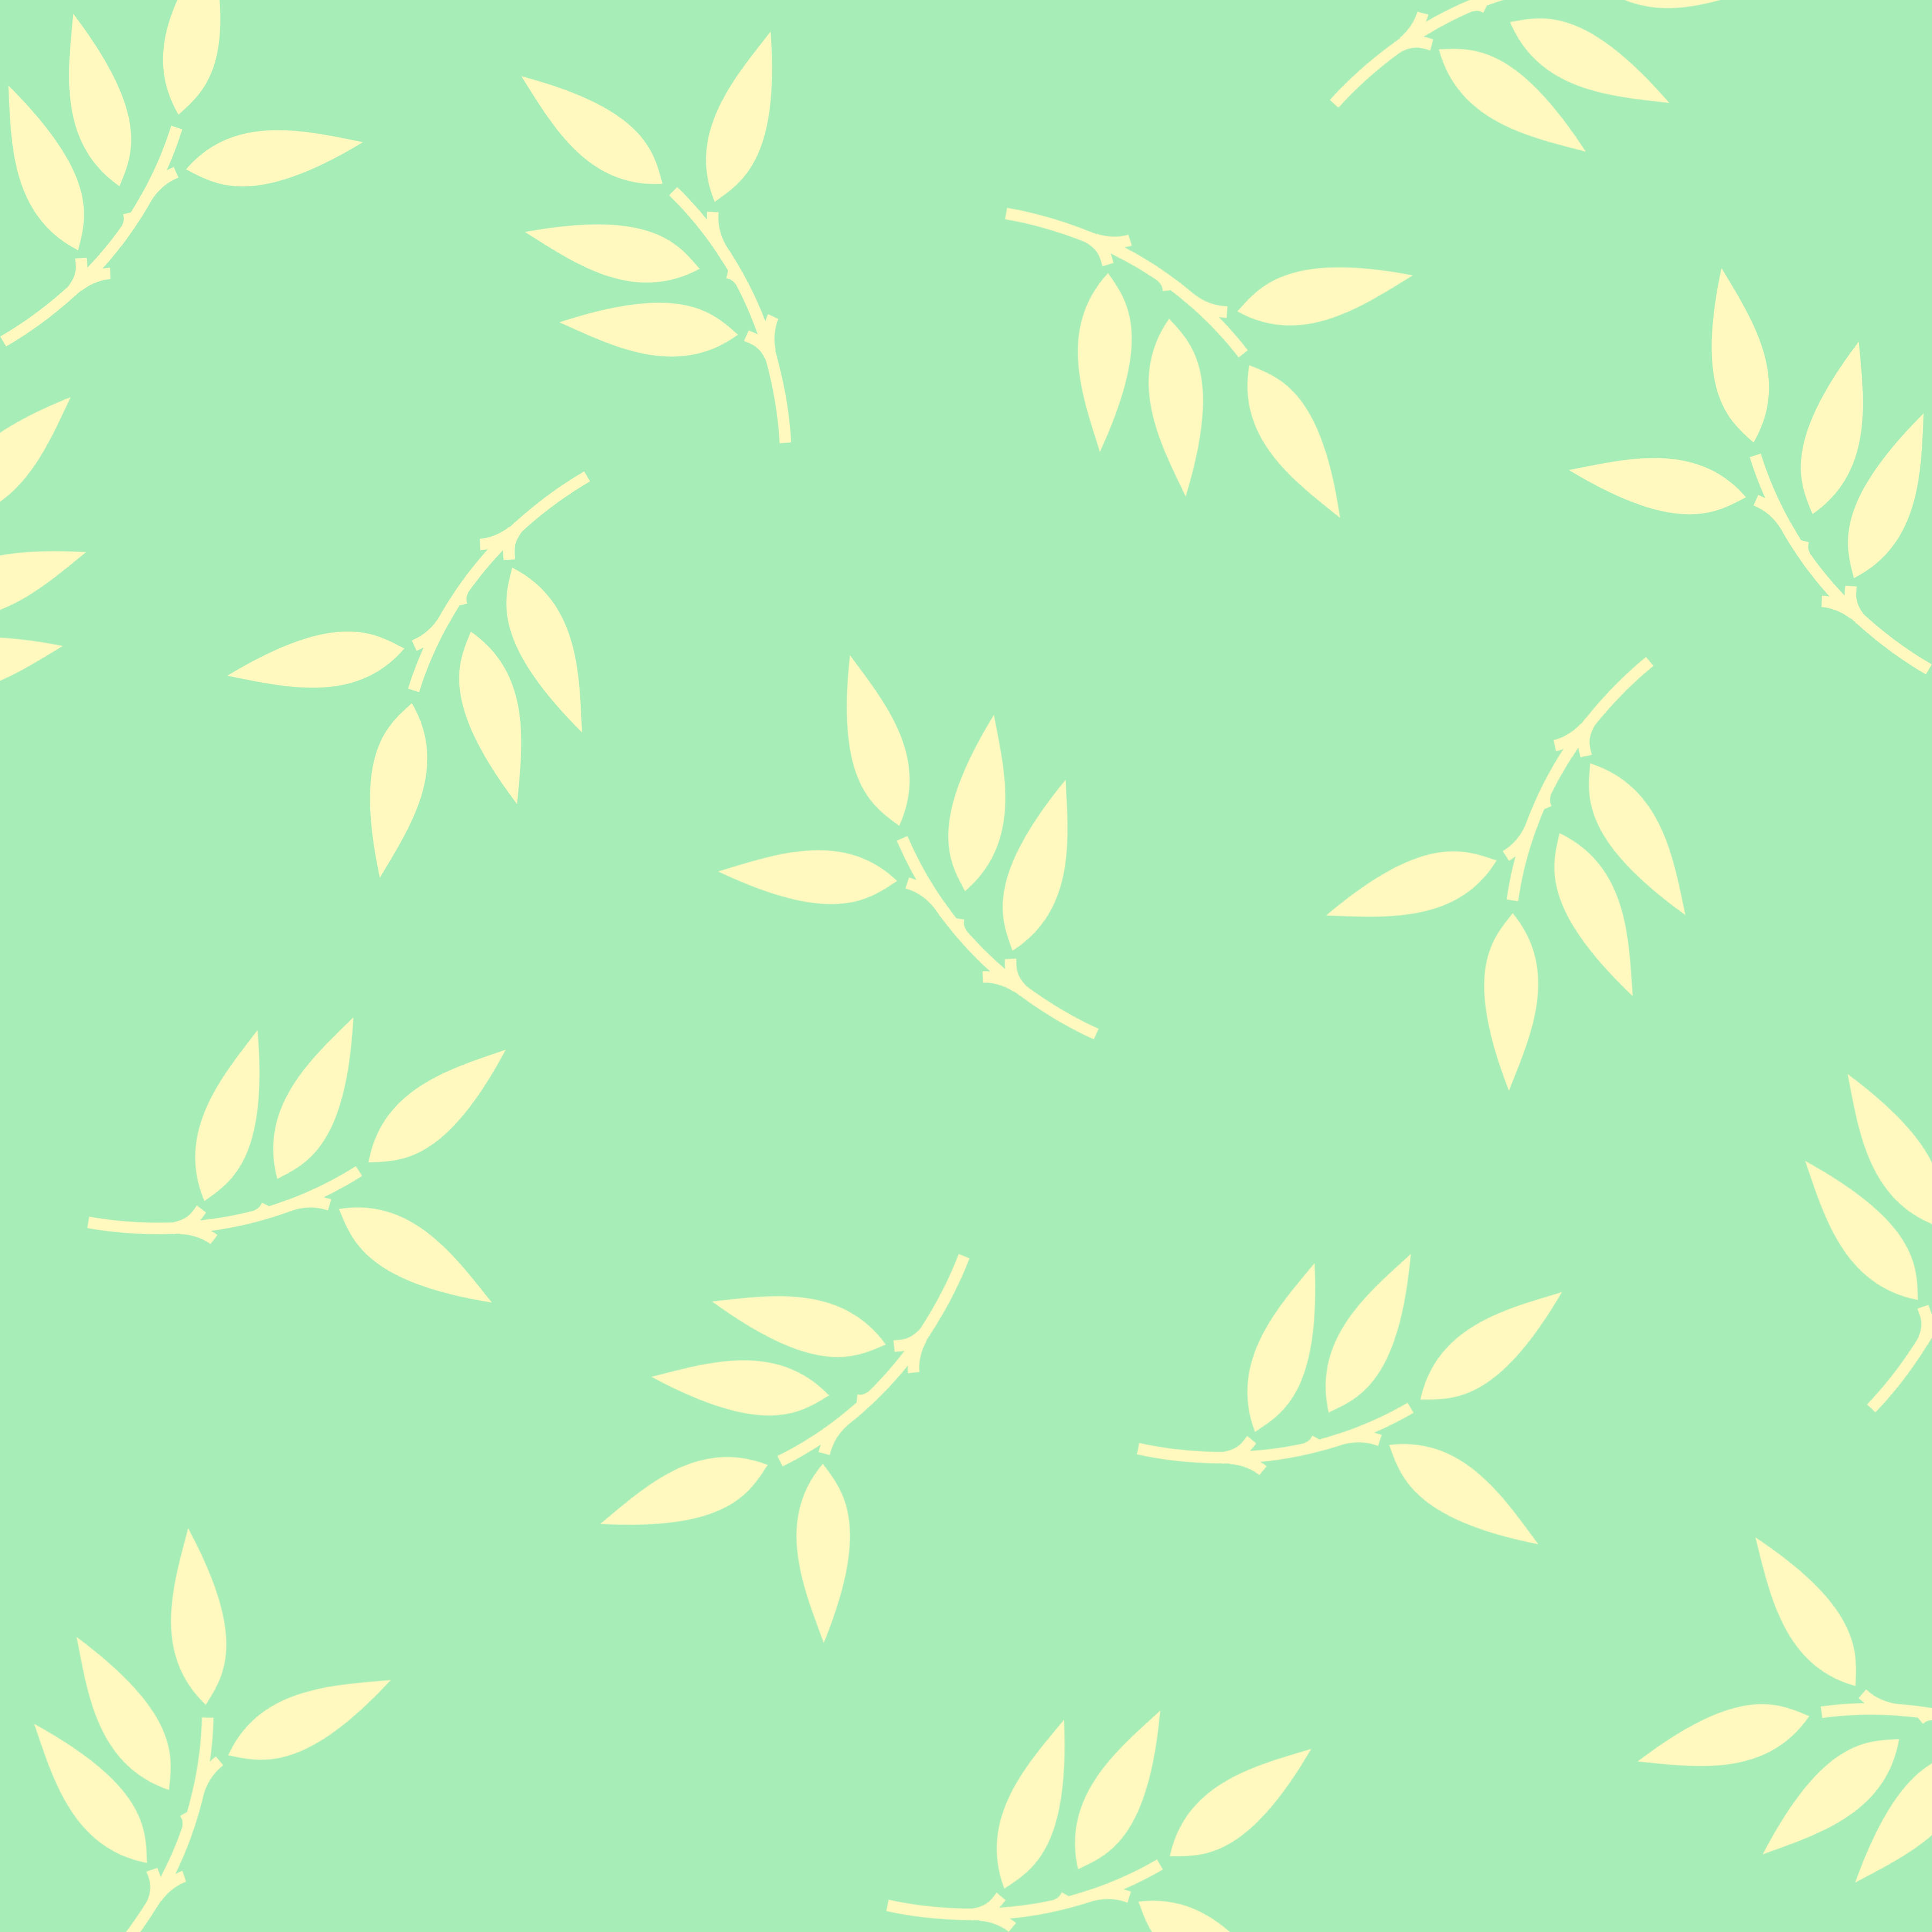 Pastel leaves background clipart vector transparent download Pastel leaves background clipart - ClipartFest vector transparent download